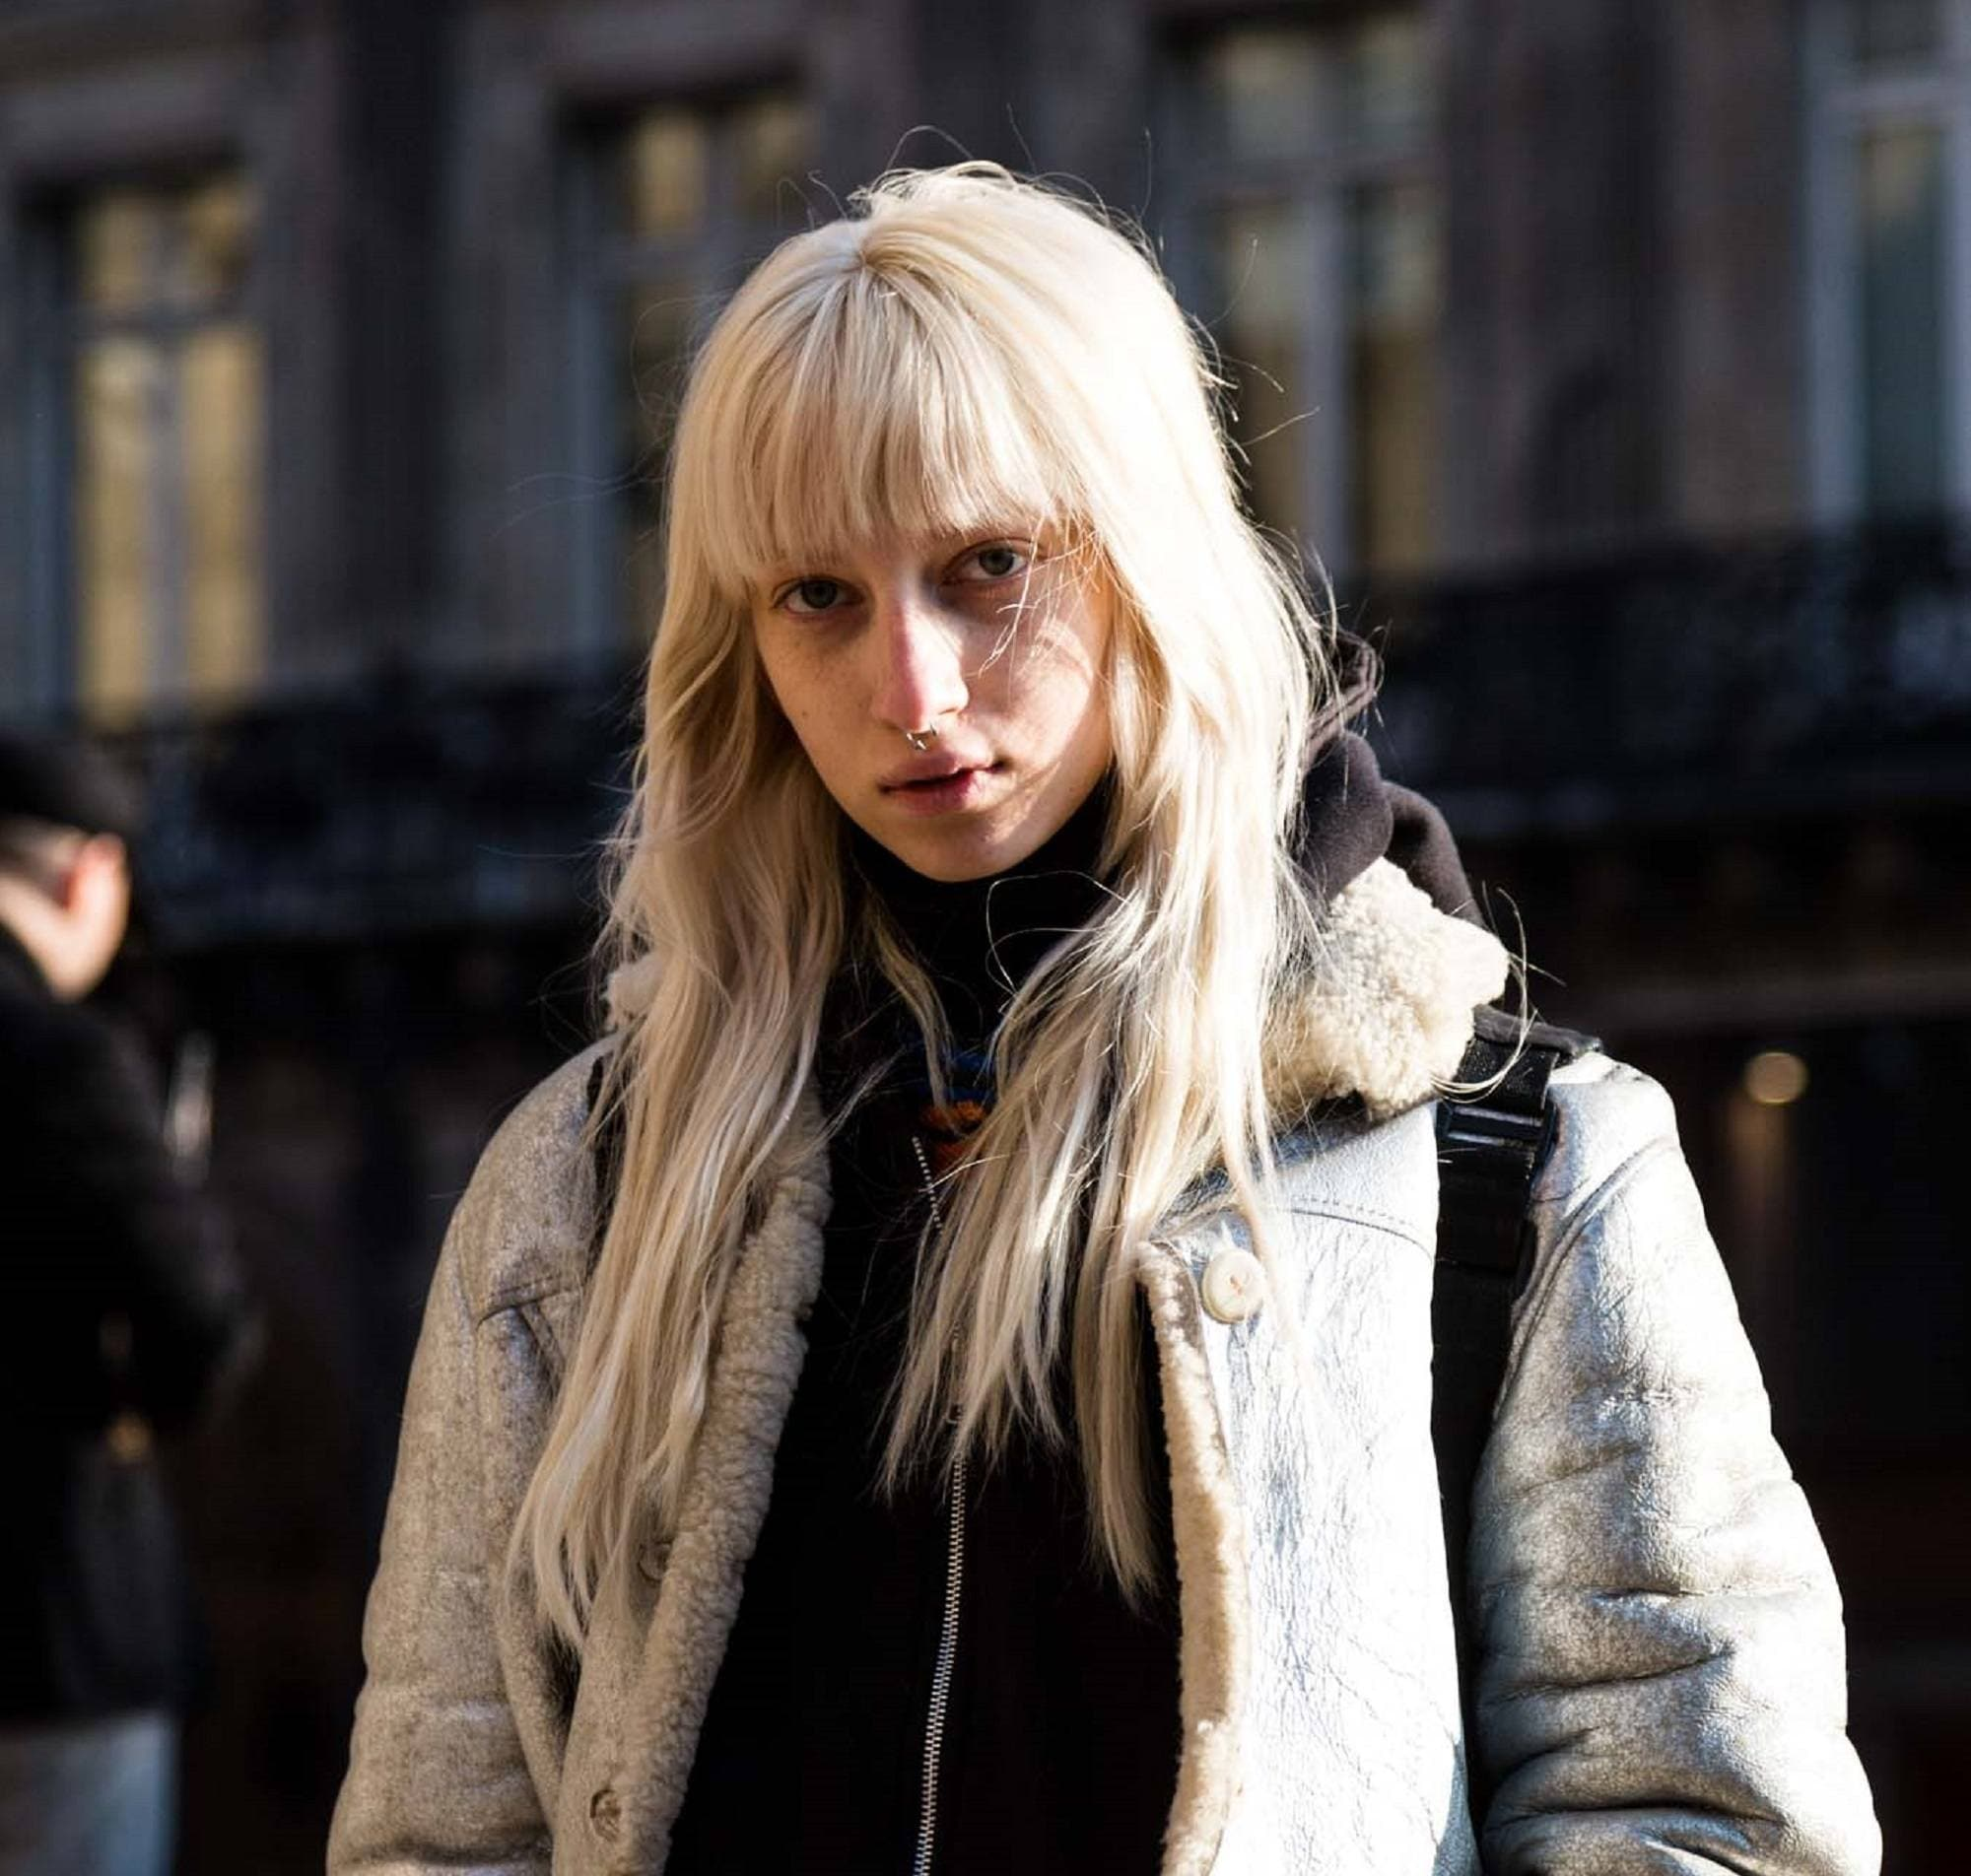 Paris Fashion Week 2019: Woman with long blonde hair with bangs wearing a jacket outdoors